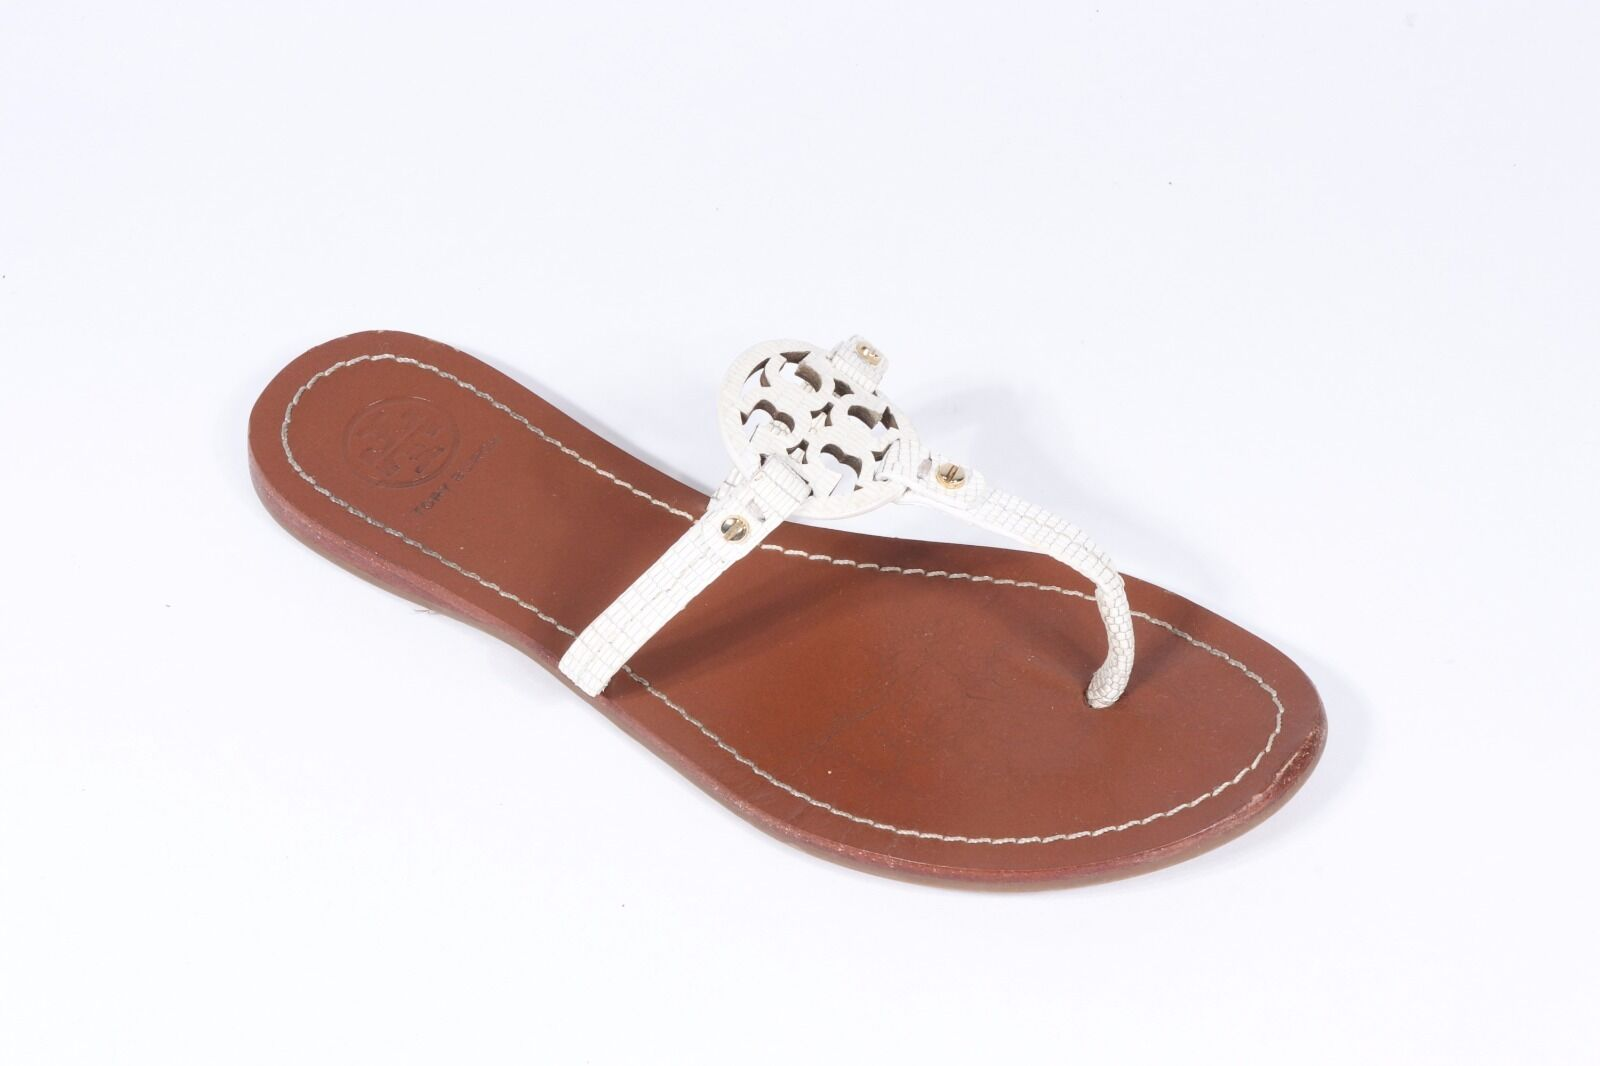 Tory Burch chaussures sandals flats mini miller blanc reptile 7.5